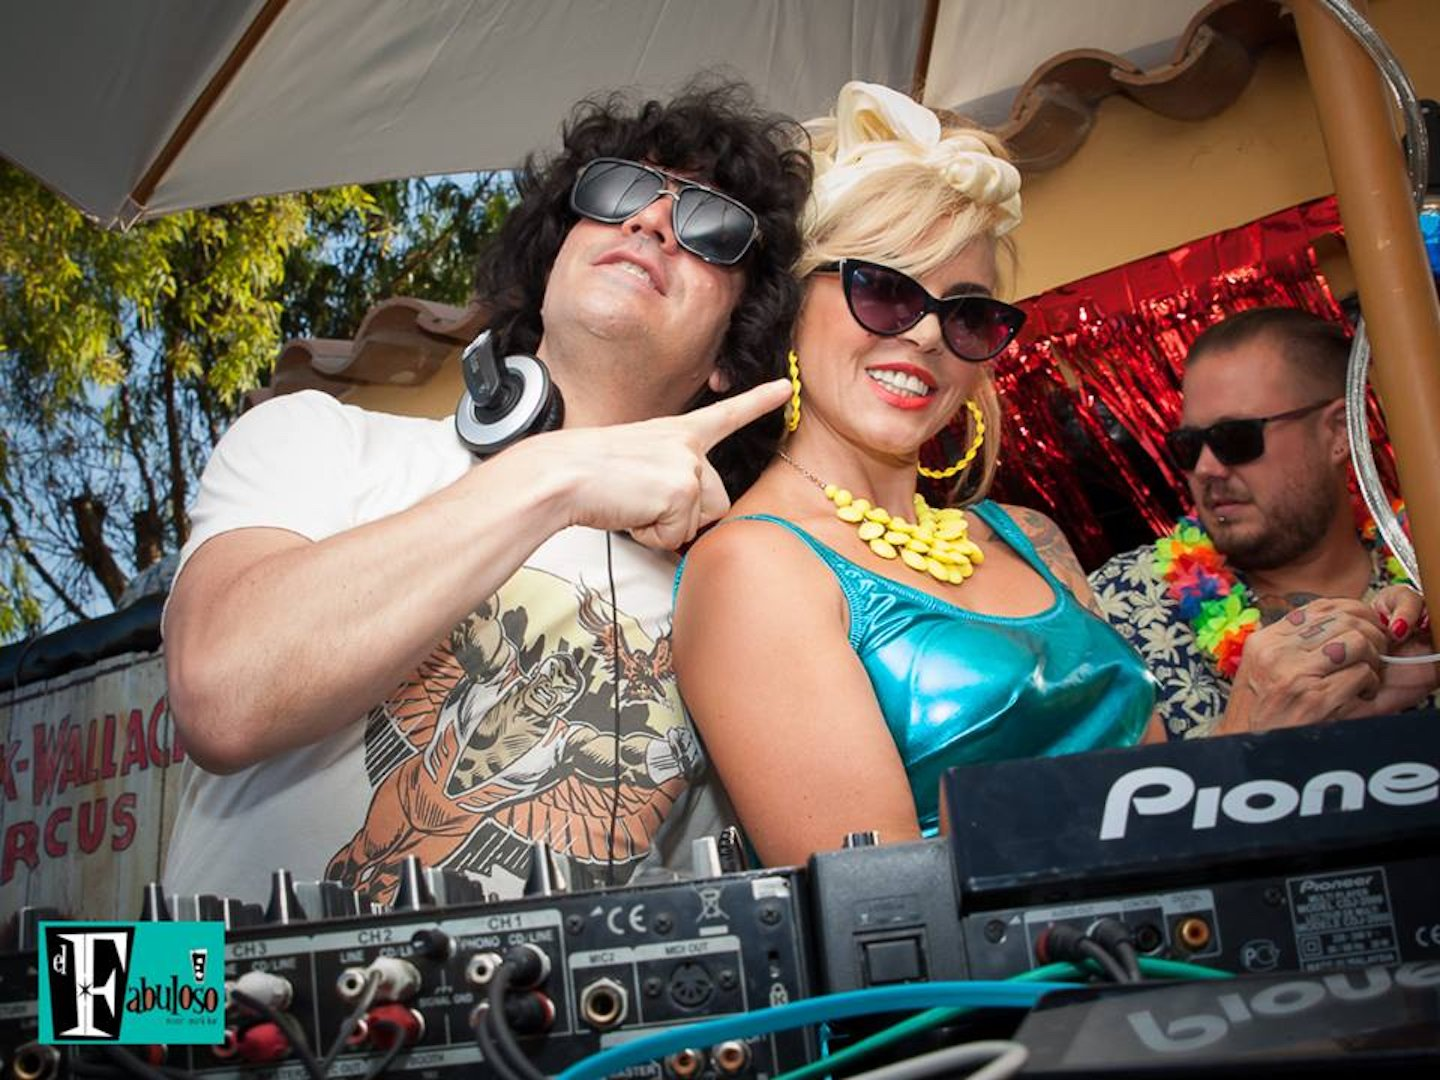 98e38cc81 Get out your Hawaiian shirts and tropical attire. Celebrating its eighth  year on Ibiza, El Fabuloso Pool Party heads to Cova Santa for what promises  to be a ...